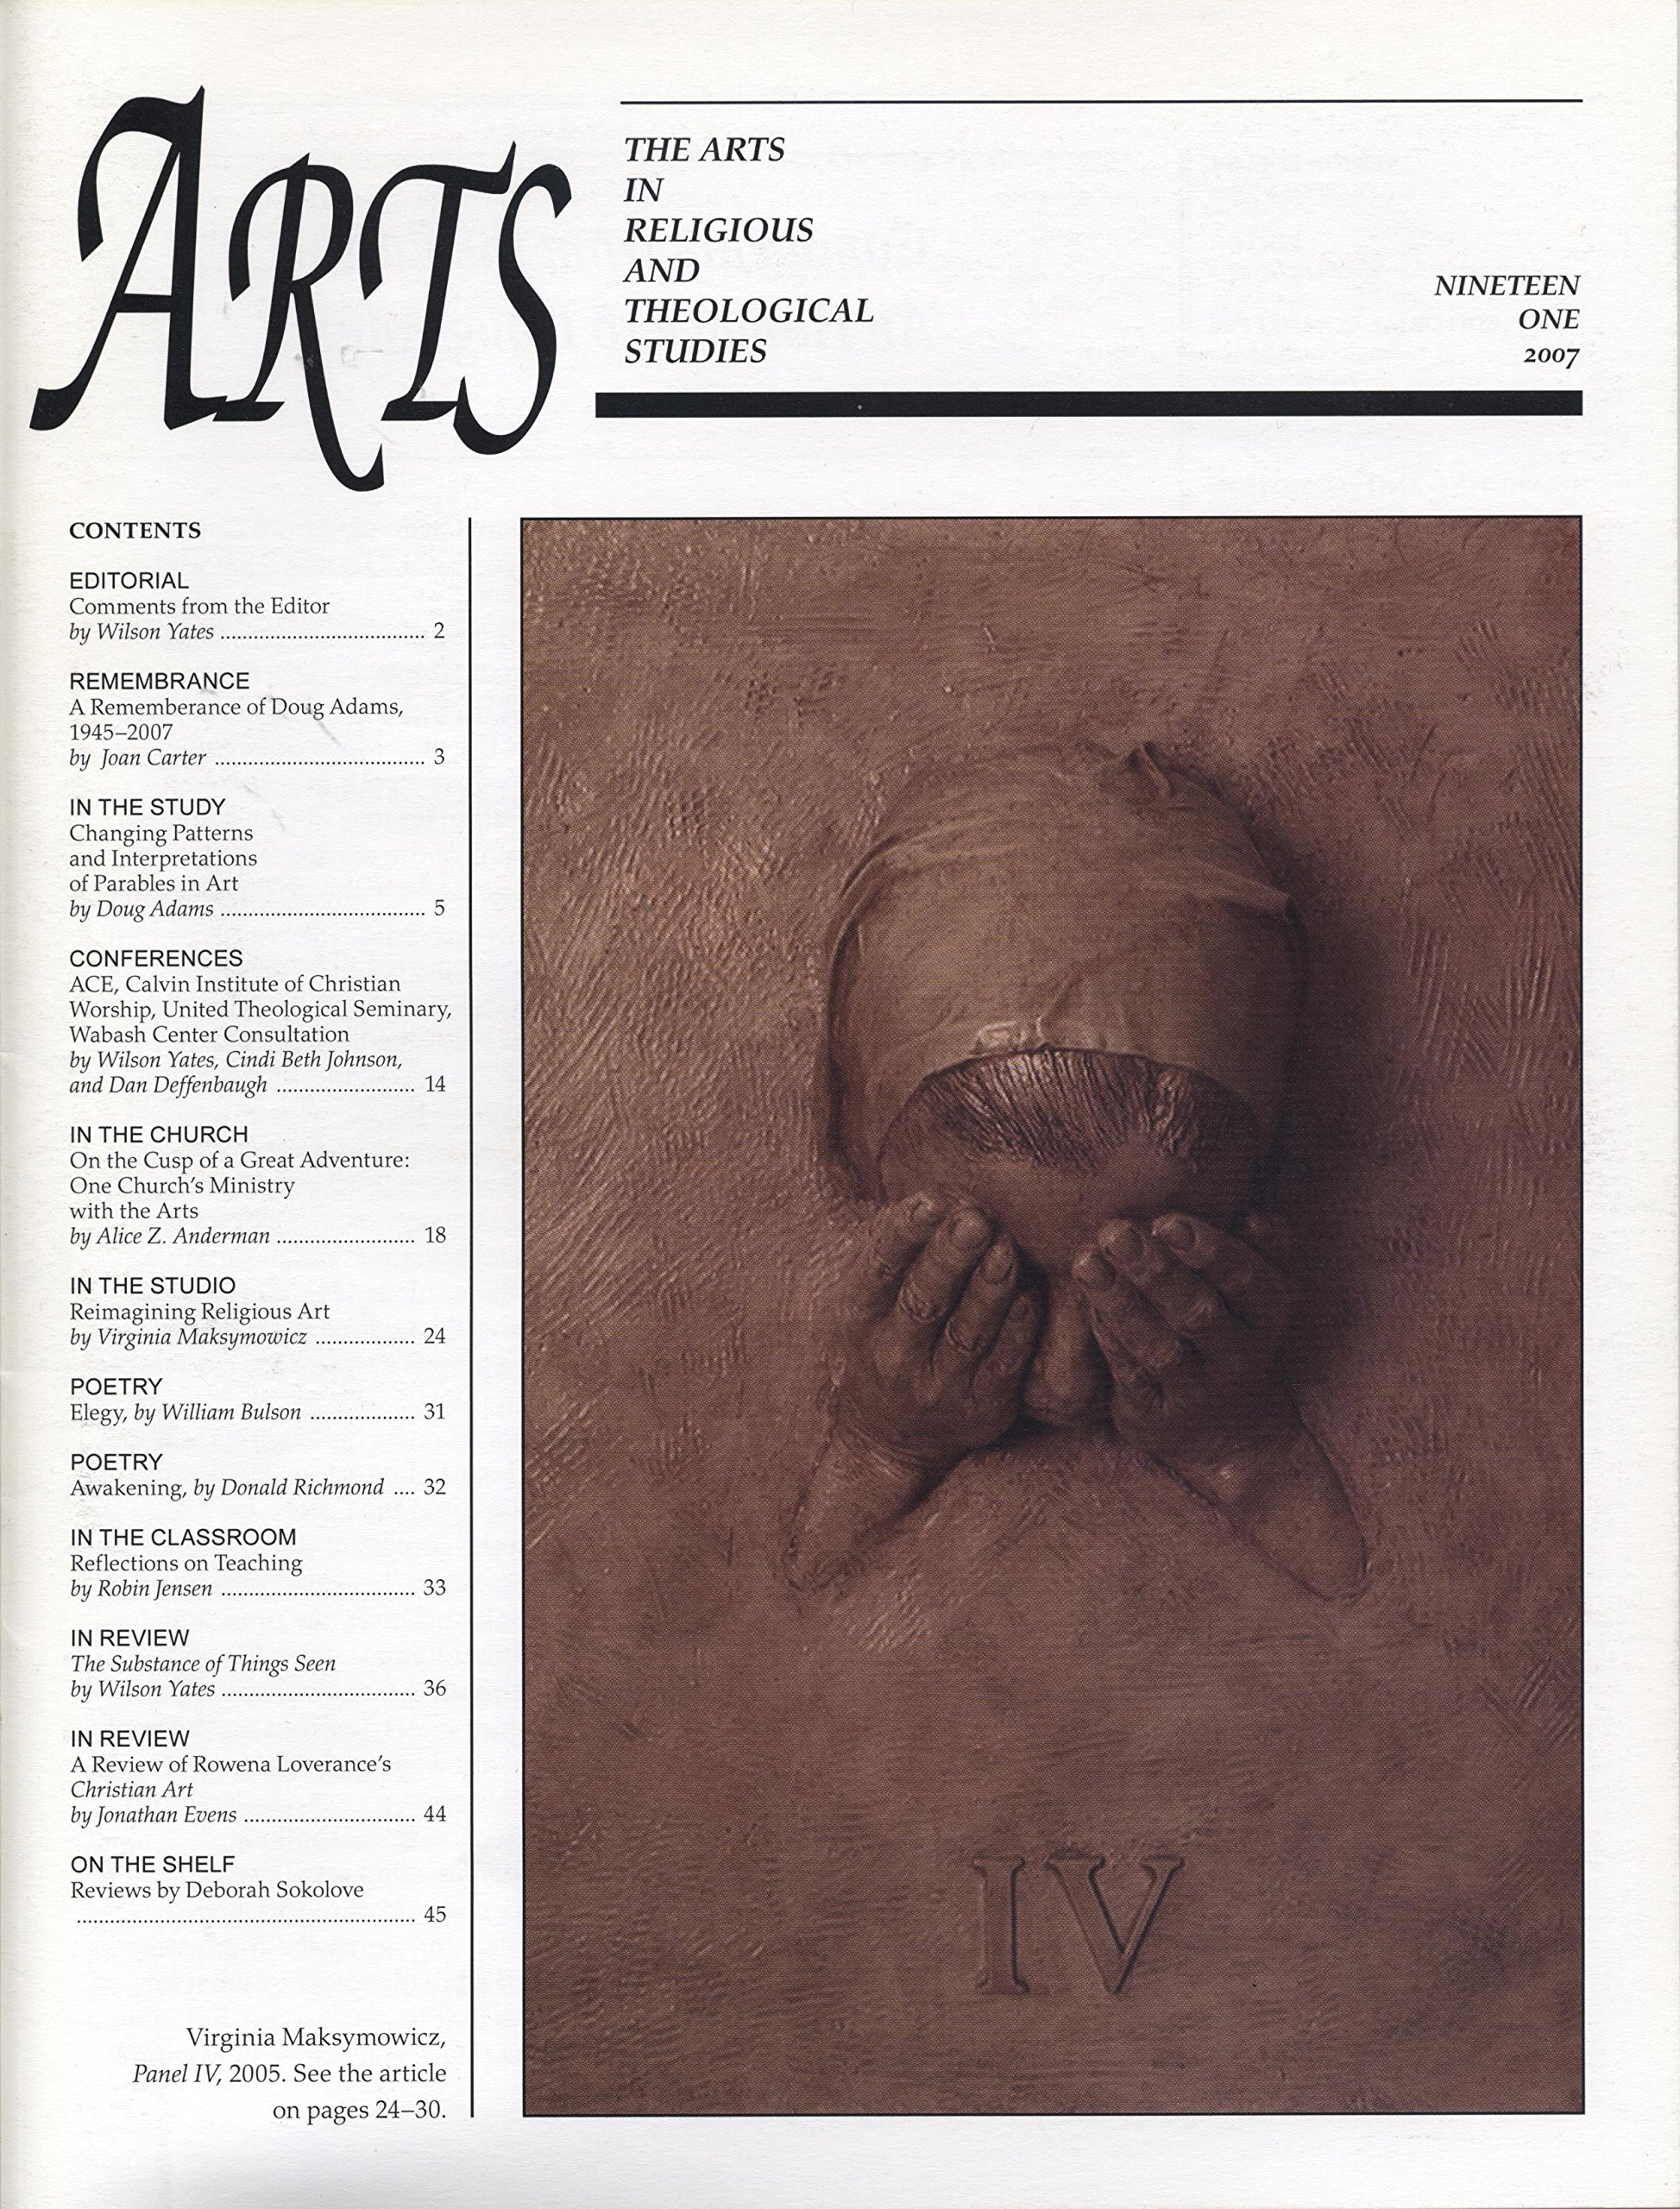 ARTS: The Arts in Religious and Theological Studies (vol. 19, no. 1) 2007 pdf